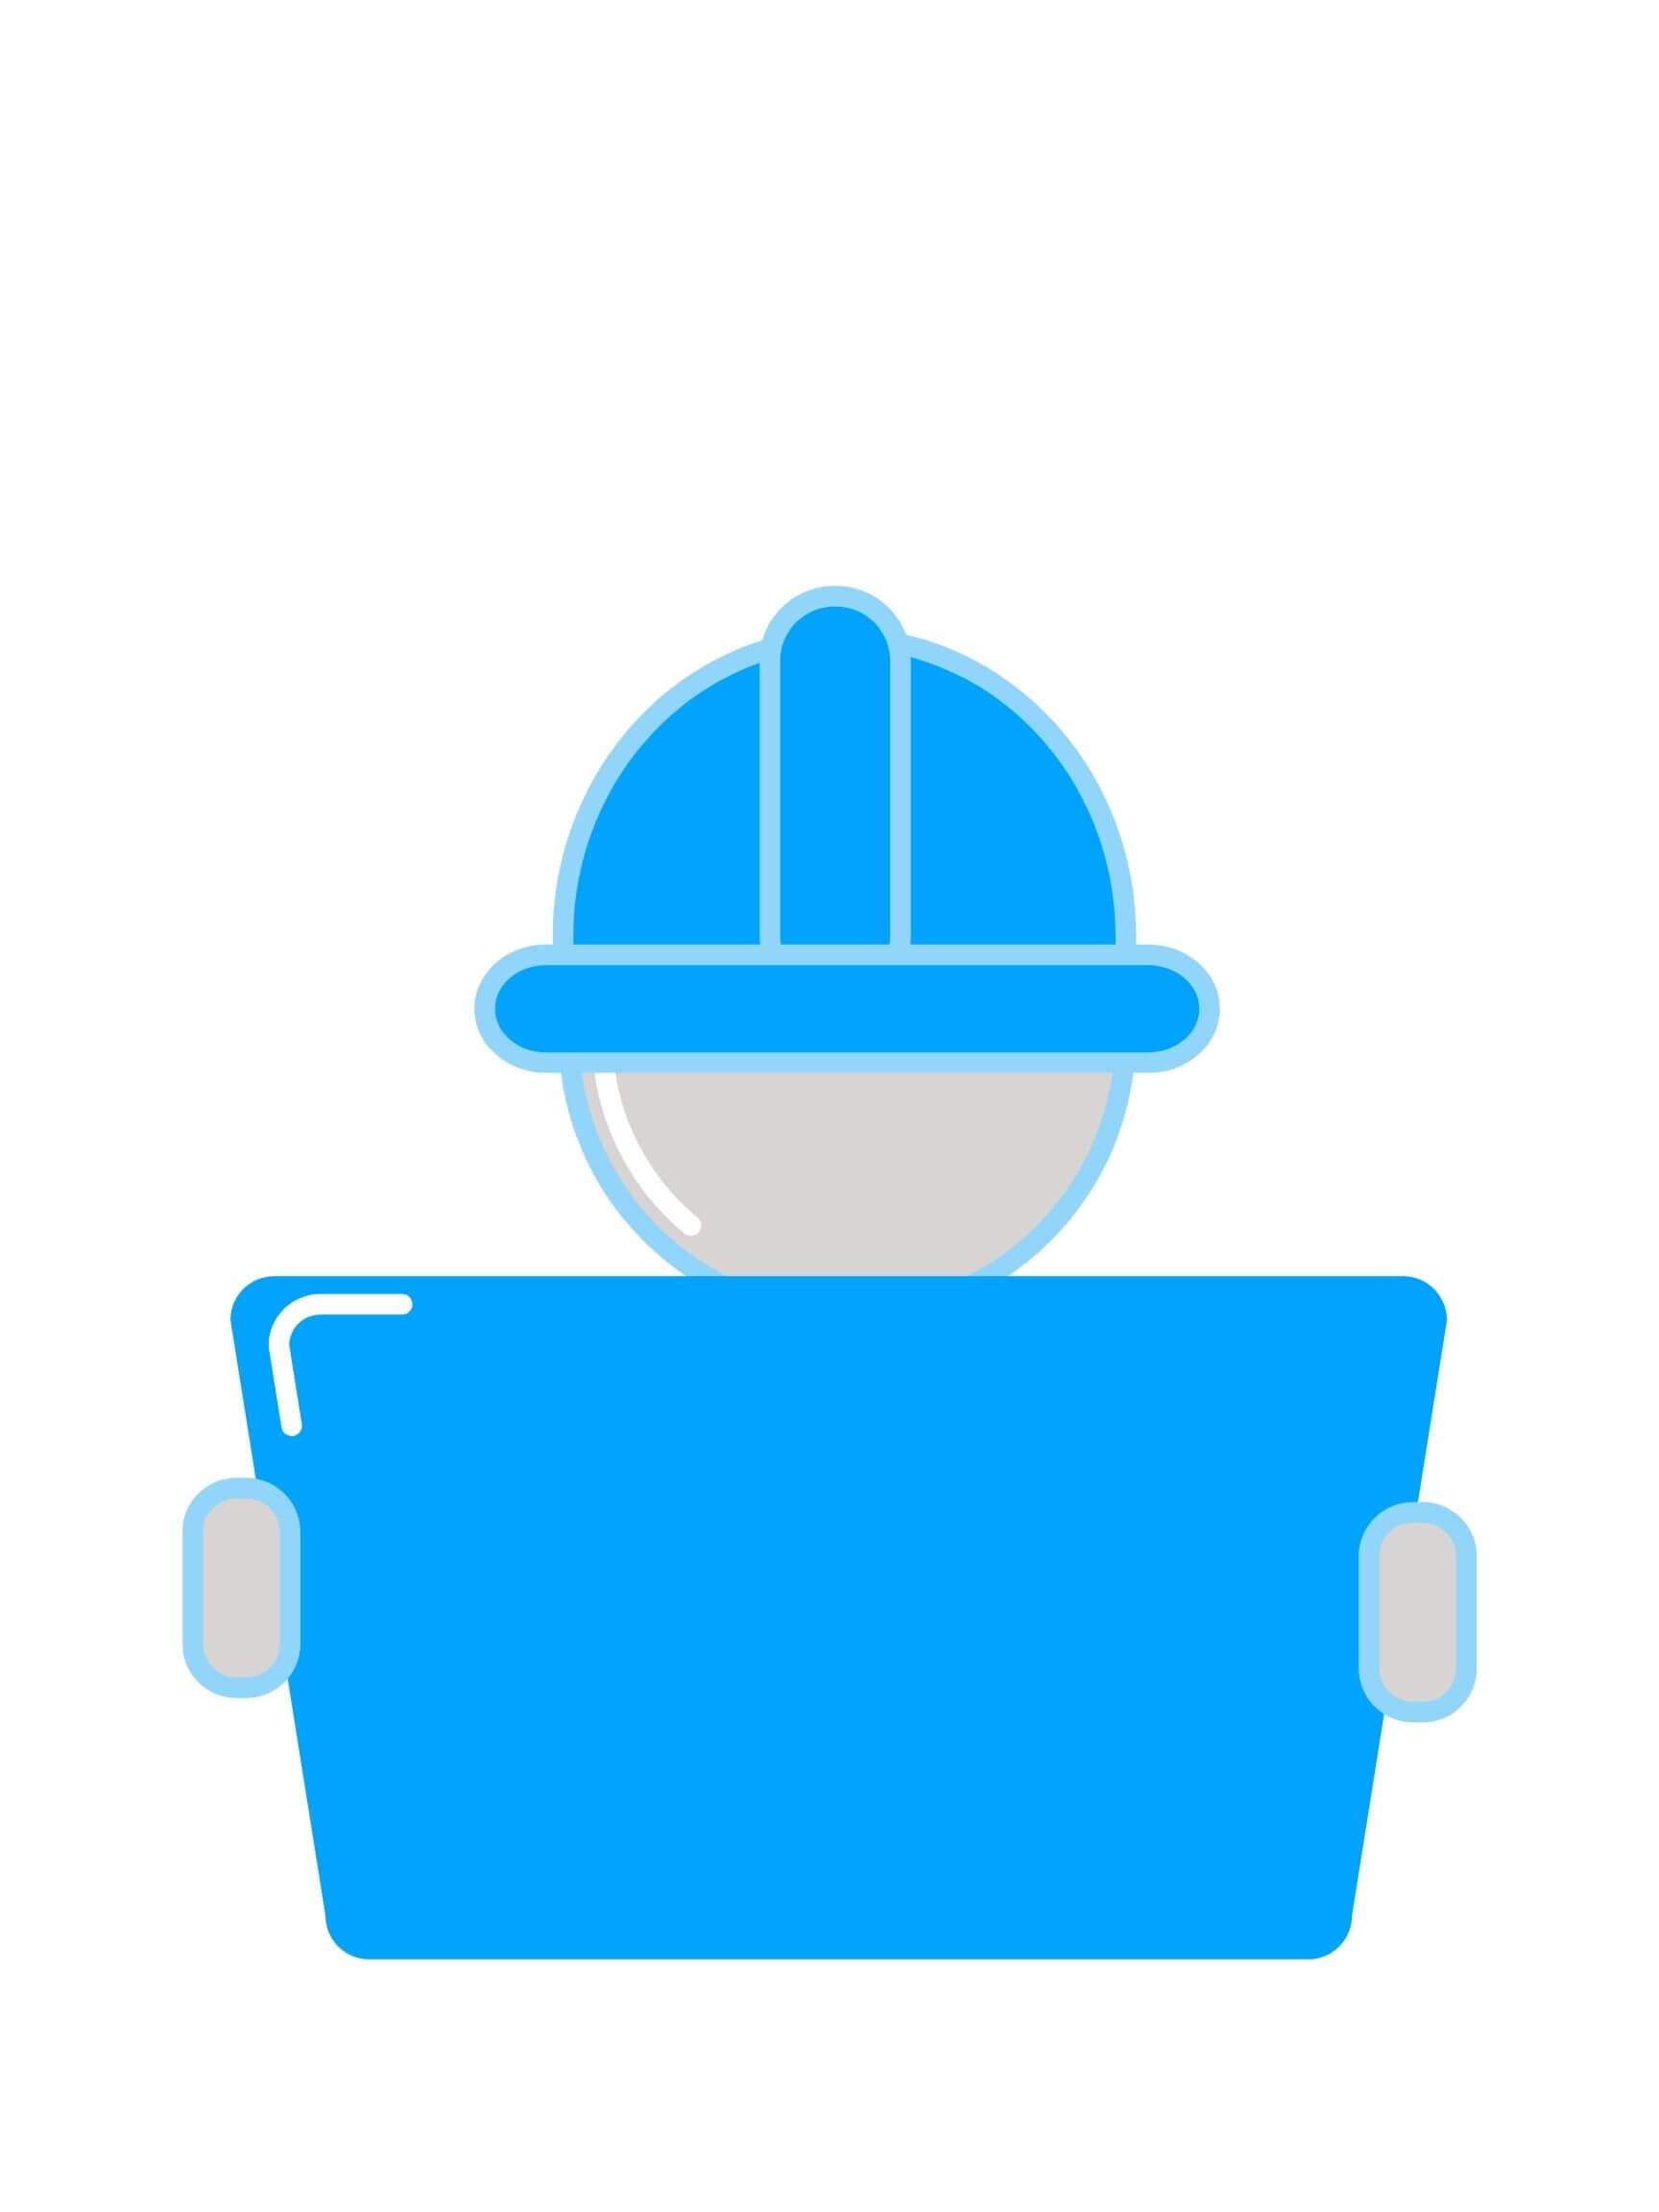 Image of a construction worker to represent germrip construction clean up cleaning services in oklahoma city